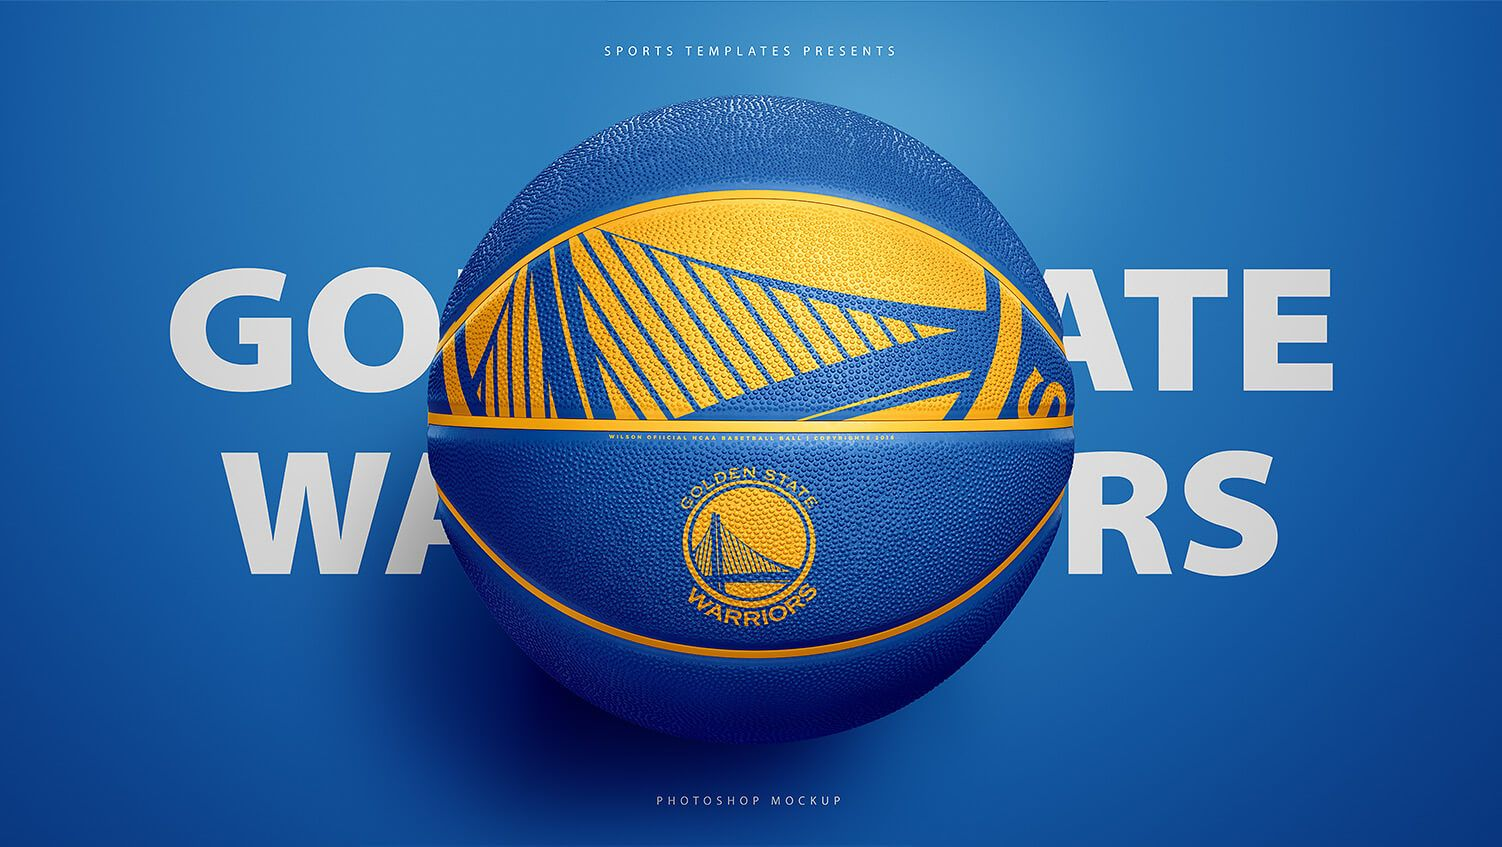 Download Golden State Warriors Basketball Ball Psd Photoshop Mockup Template Sports Templates Basketball Ball Templates